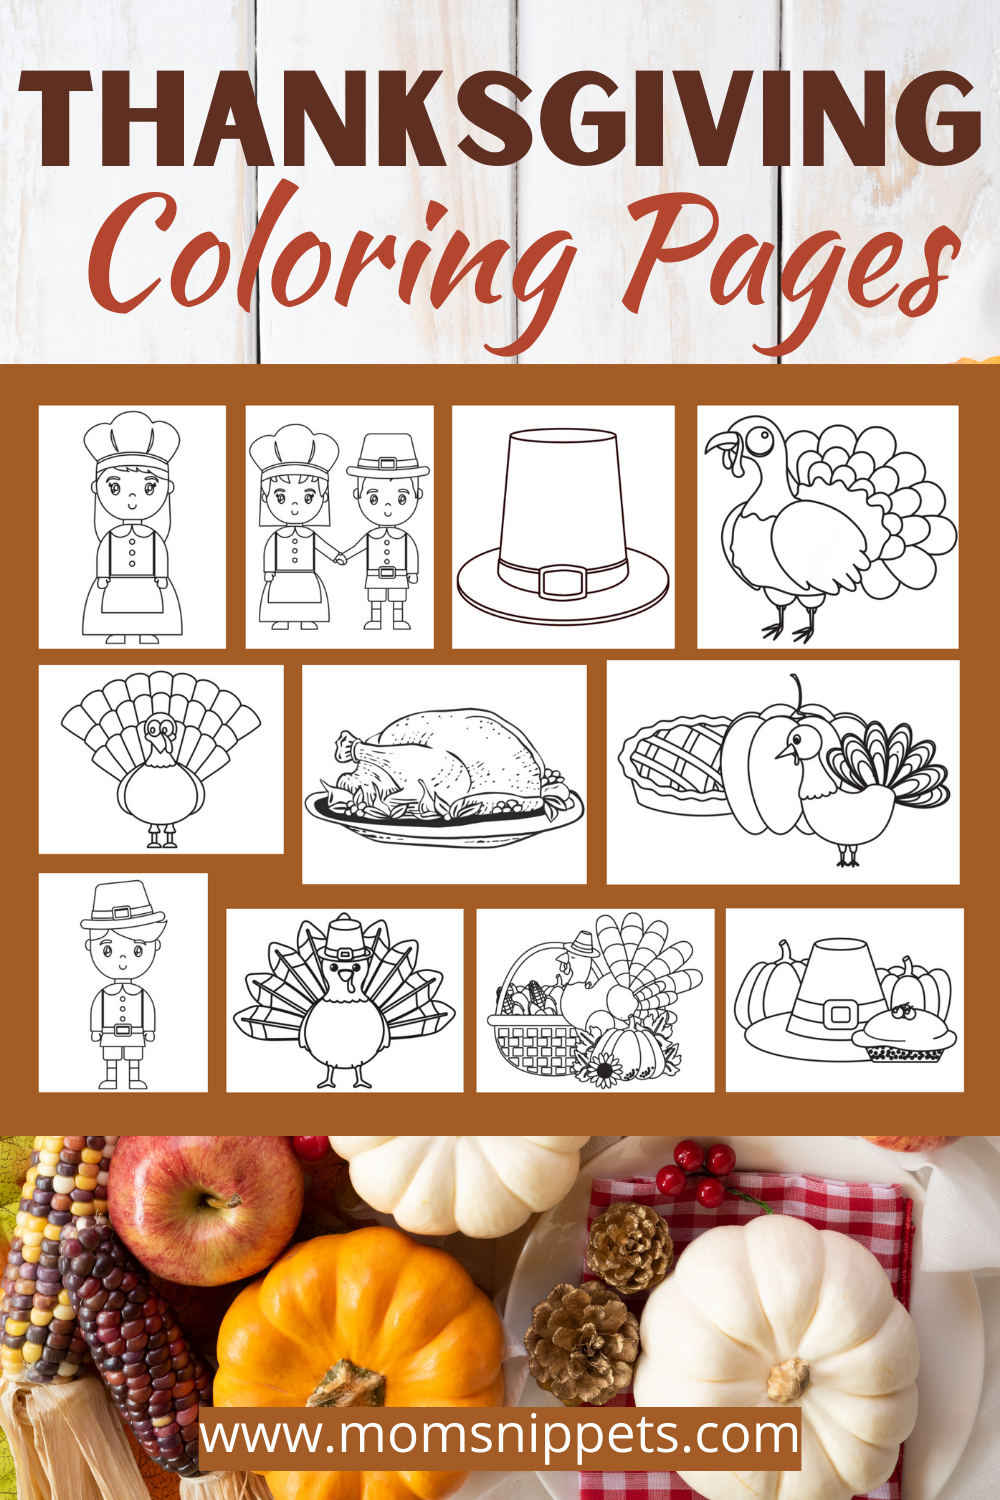 Thanksgiving Coloring Pages In 2020 Thanksgiving Coloring Pages Thanksgiving Activities For Kids Autumn Activities For Kids